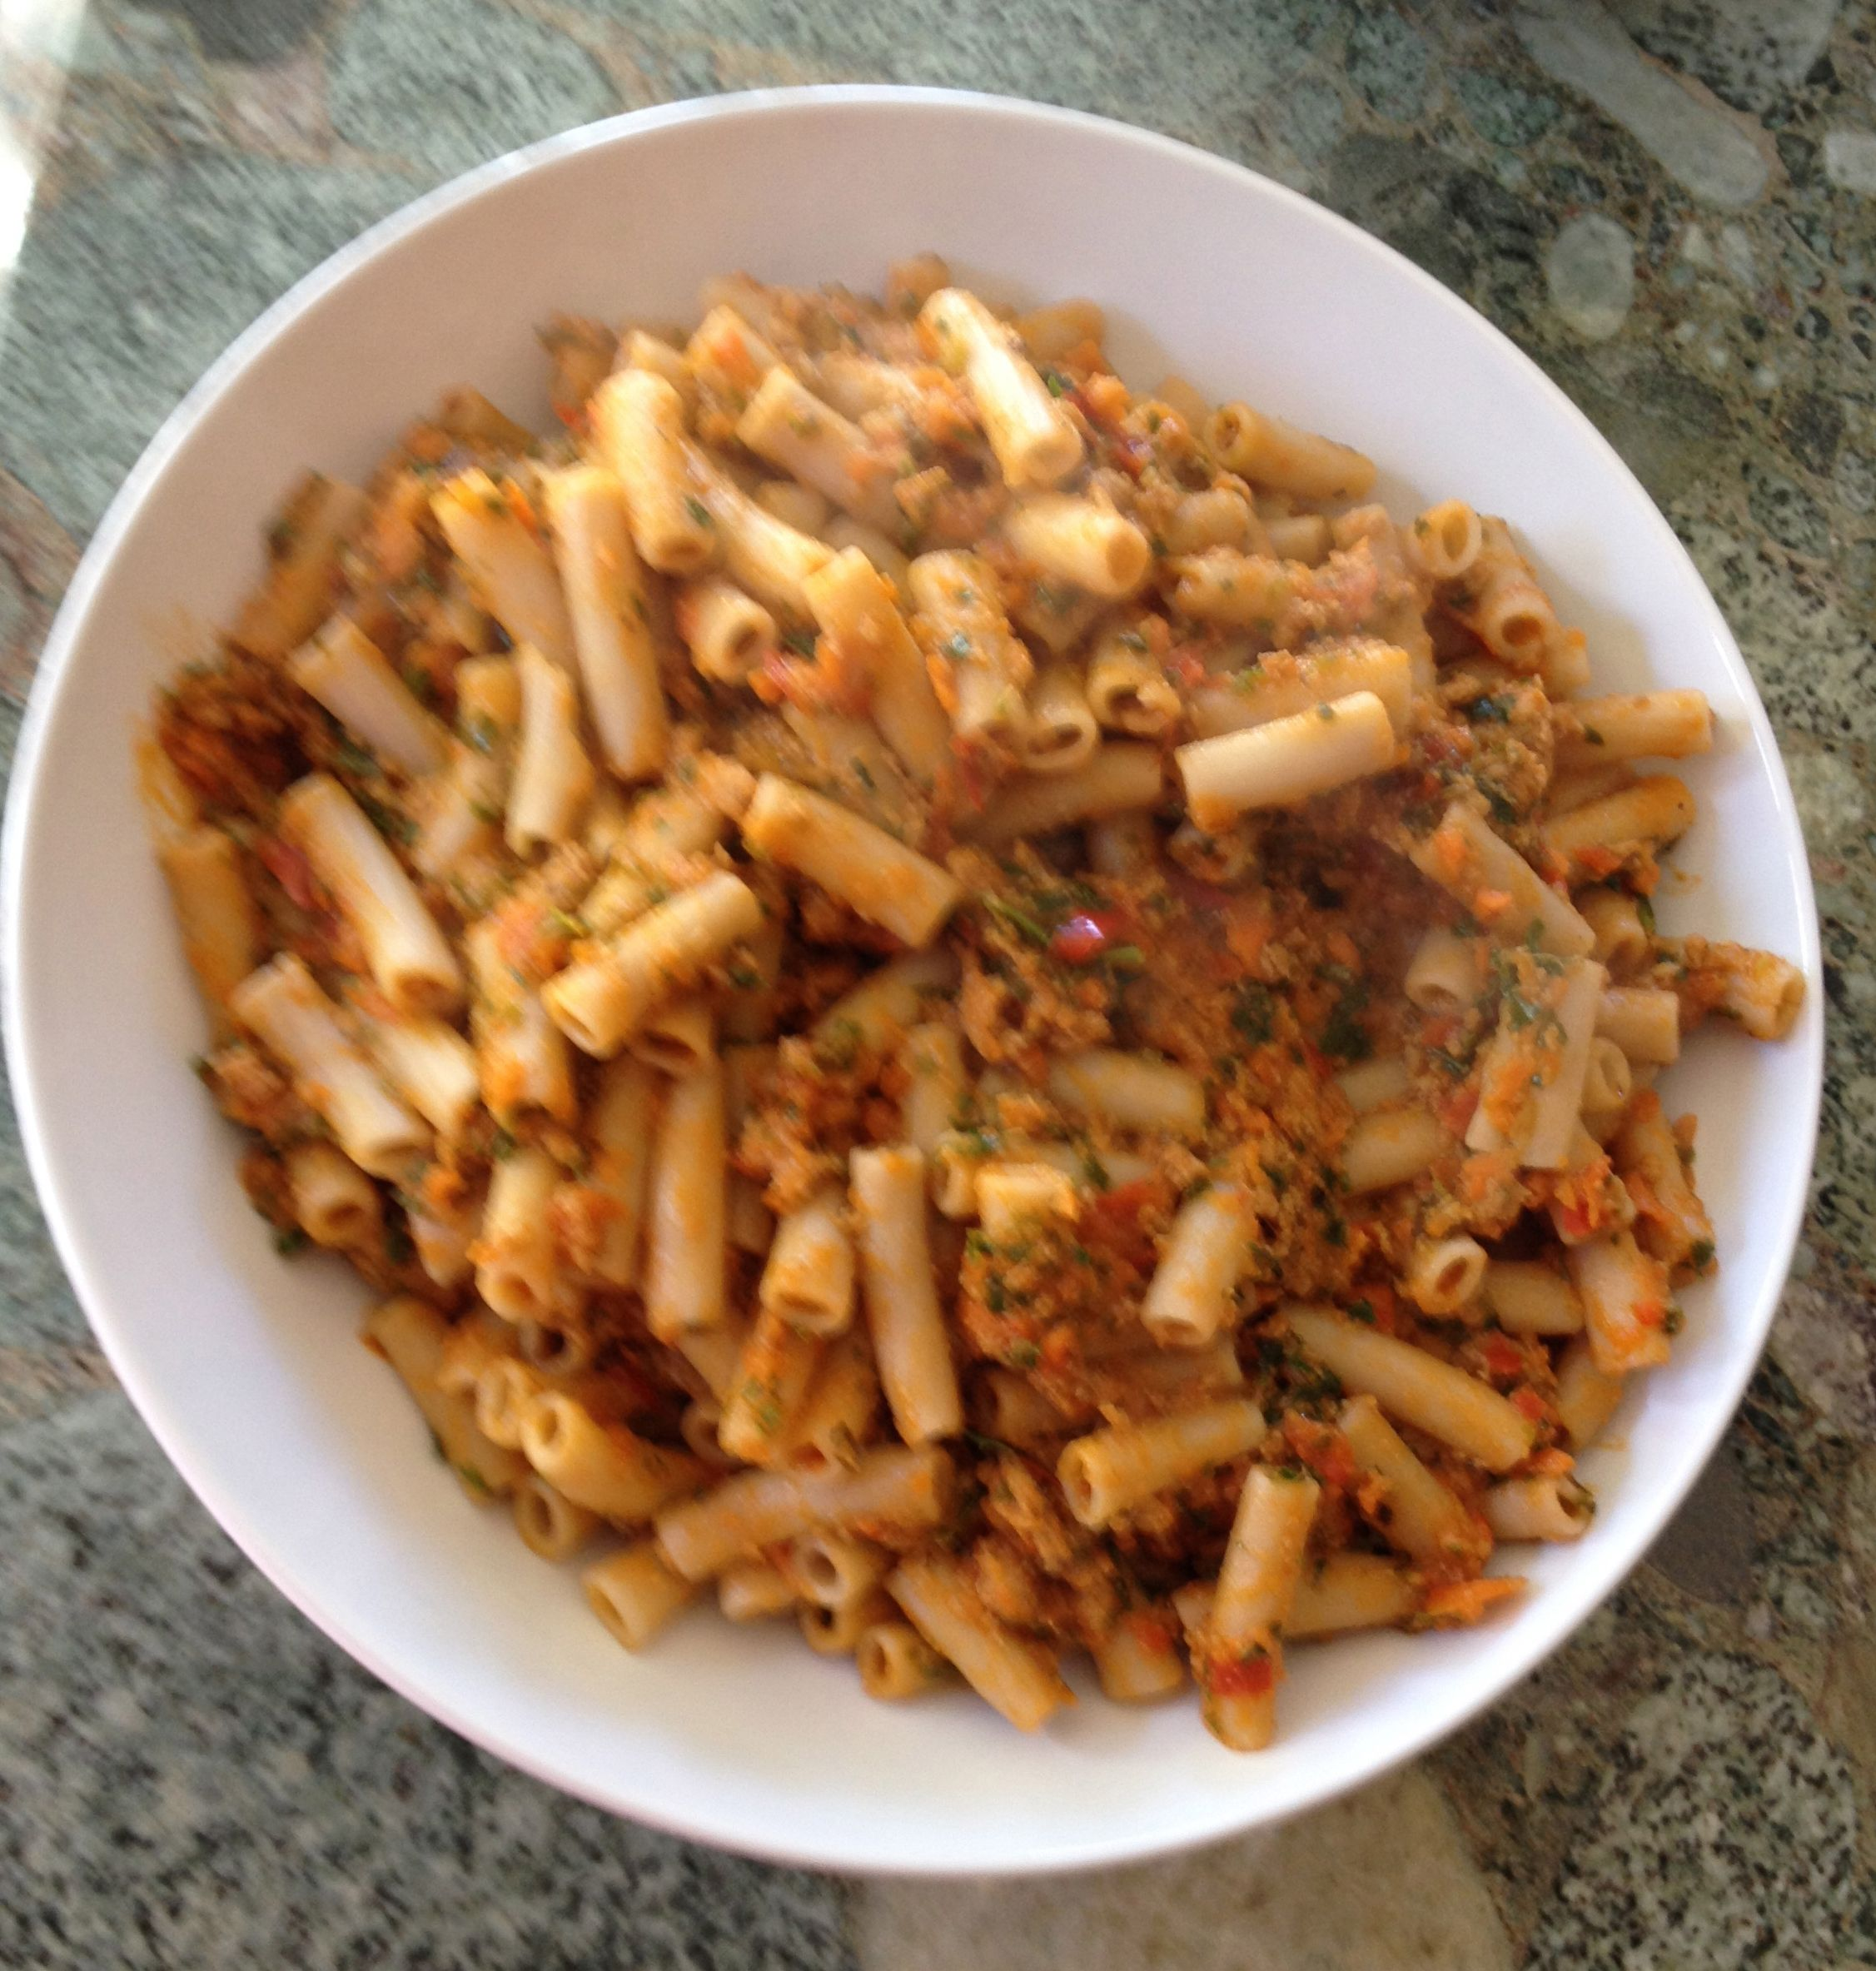 Is brown rice pasta good for you